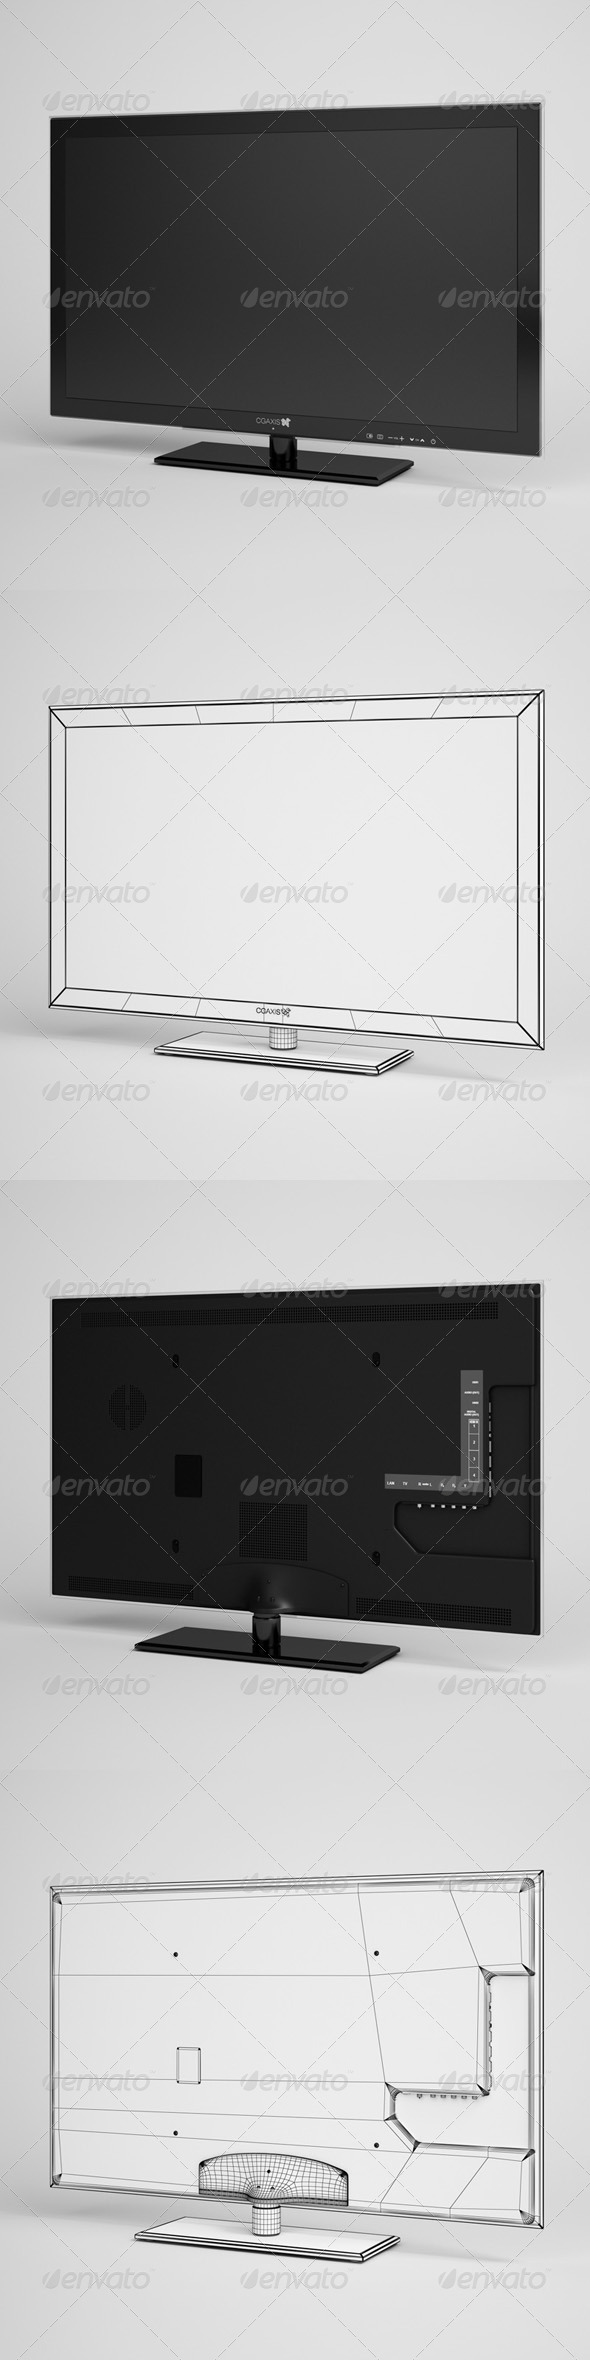 CGAxis TV Flatscreen Electronics 02 - 3DOcean Item for Sale